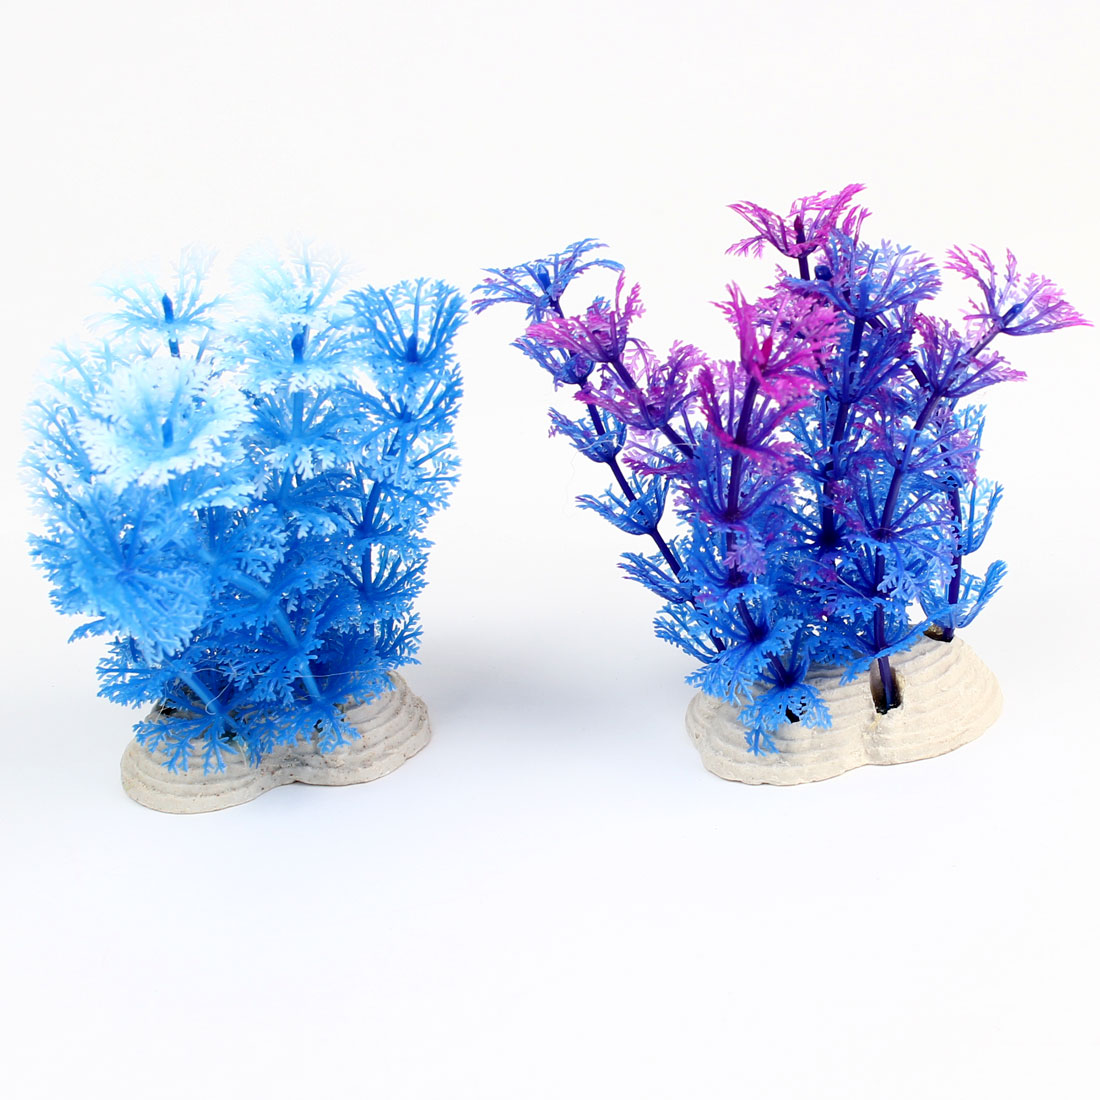 2Pcs Aquarium Fishbowl Ornament Purple Blue White Plastic Underwater Plant 12cm Height